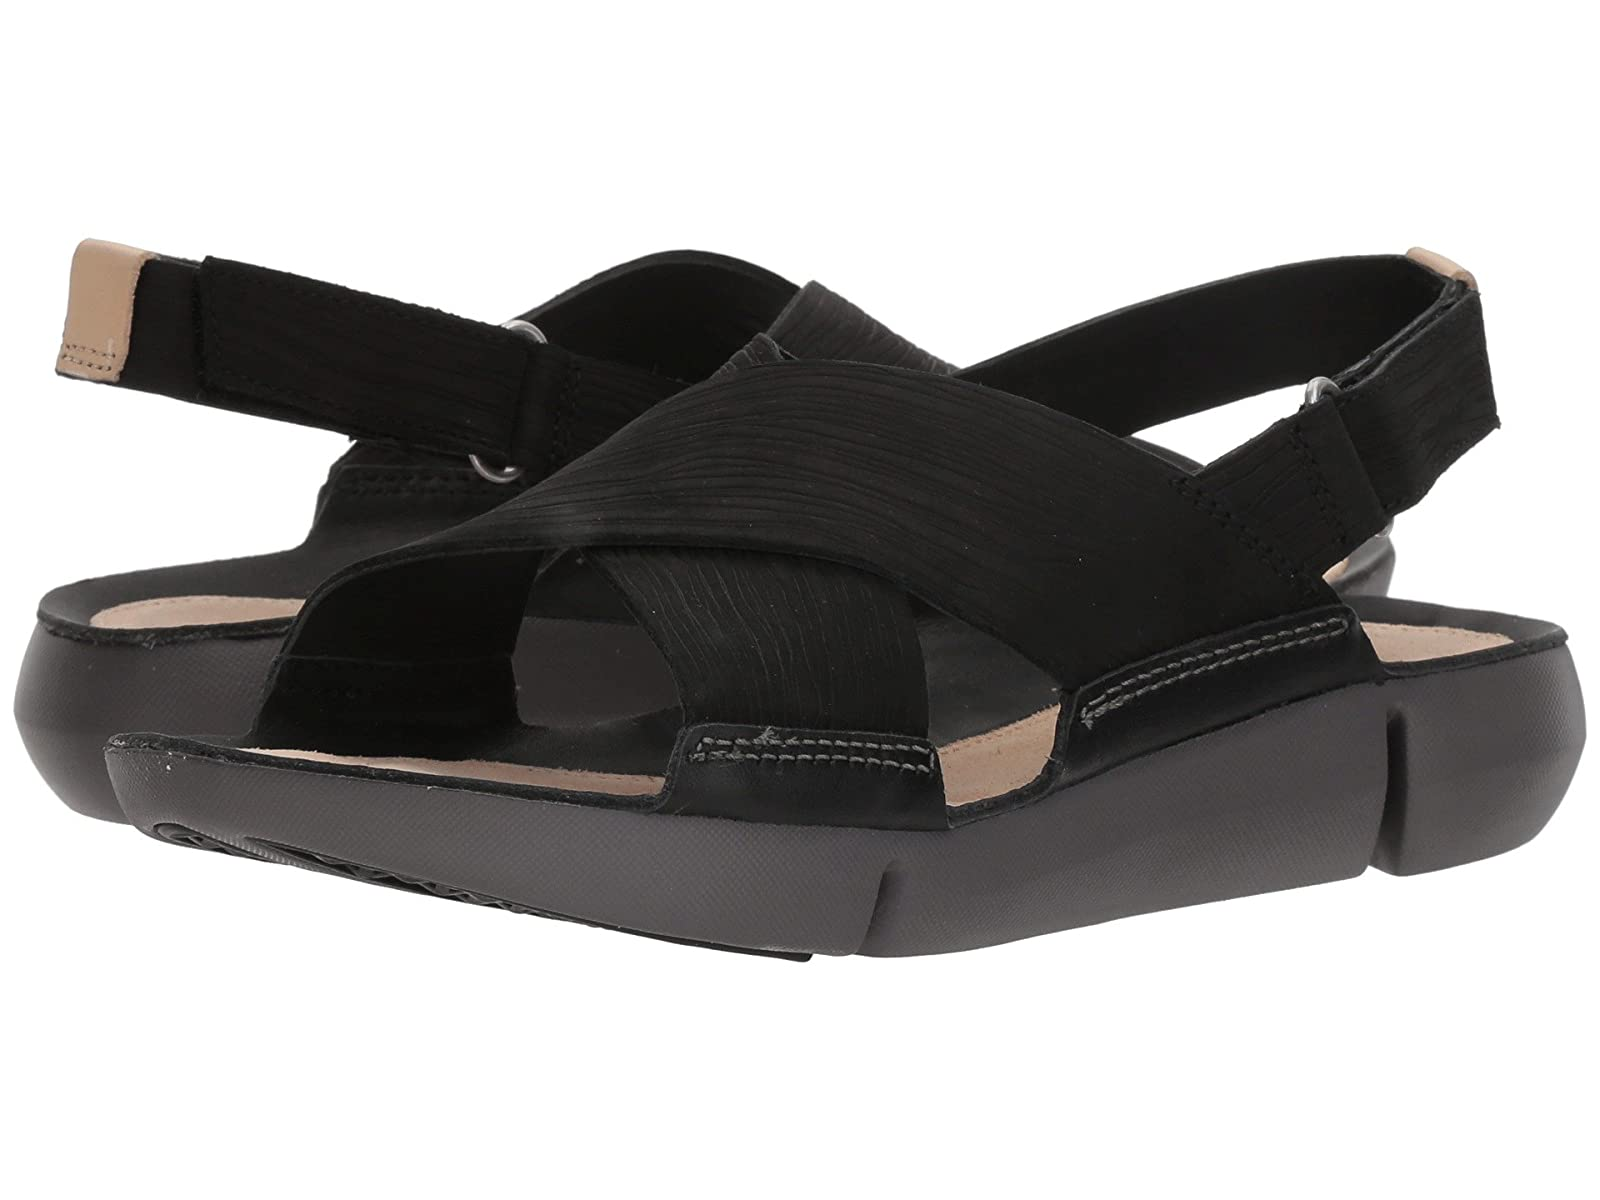 Clarks Tri ChloeComfortable and distinctive shoes